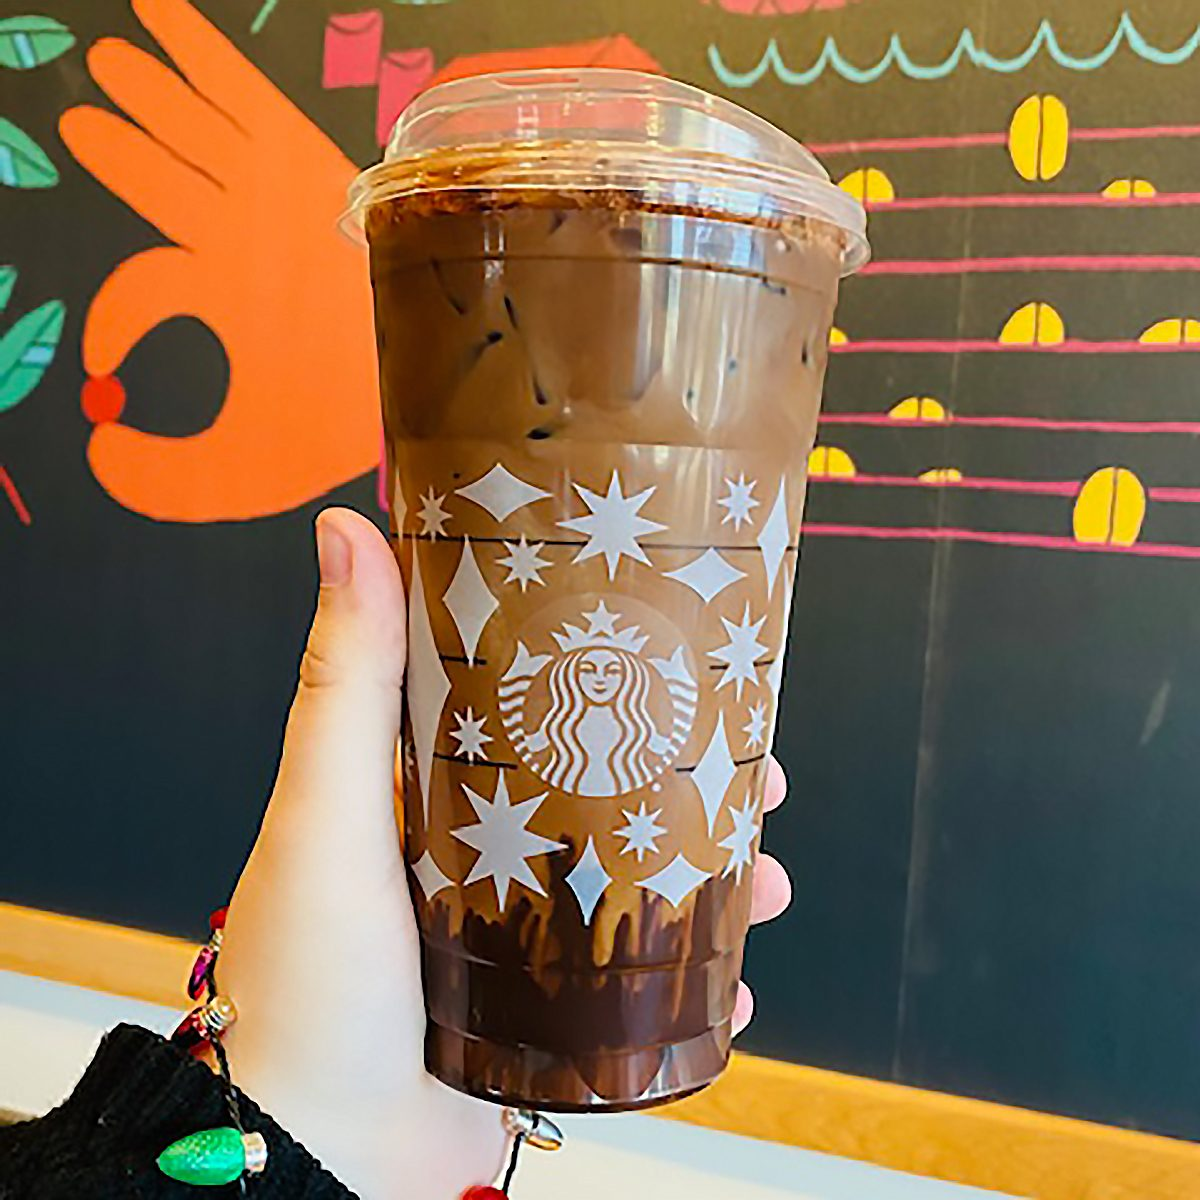 HOT COCOA COLD BREW FROM STARBUCKS